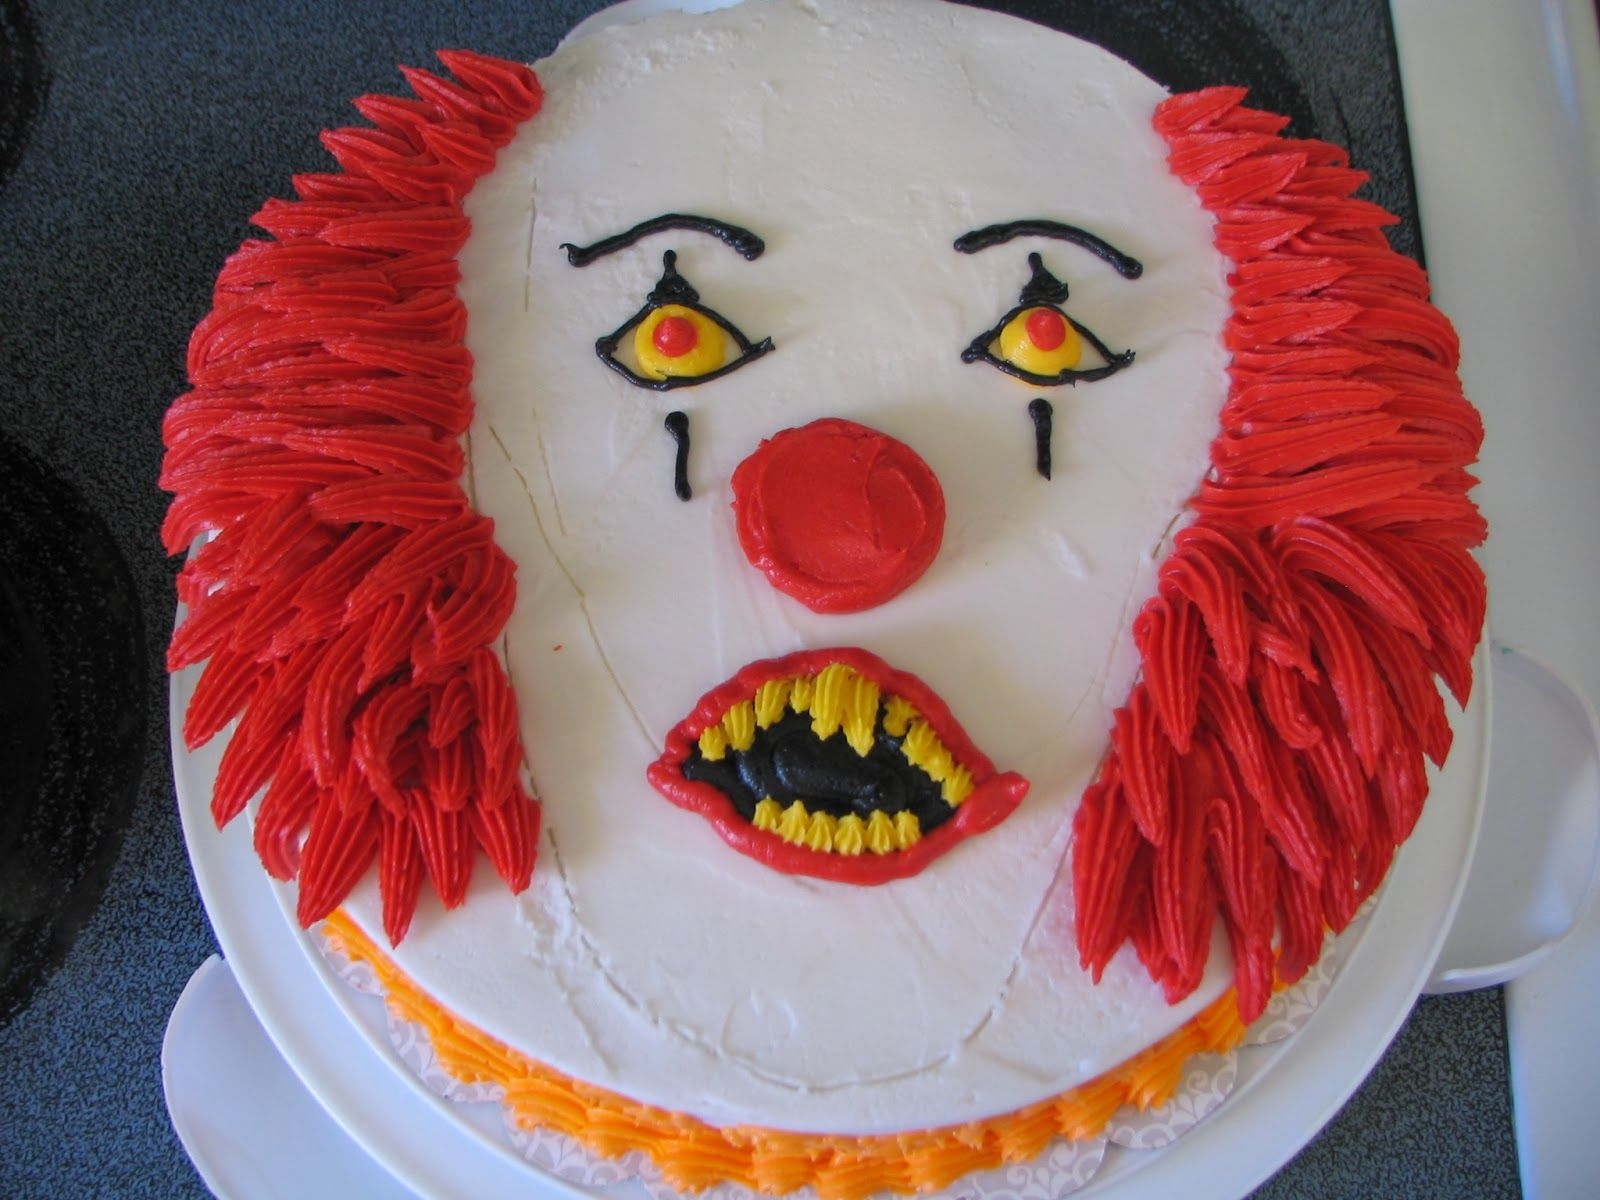 Scary clown cake, Pennywise Piped Dreams Pinterest